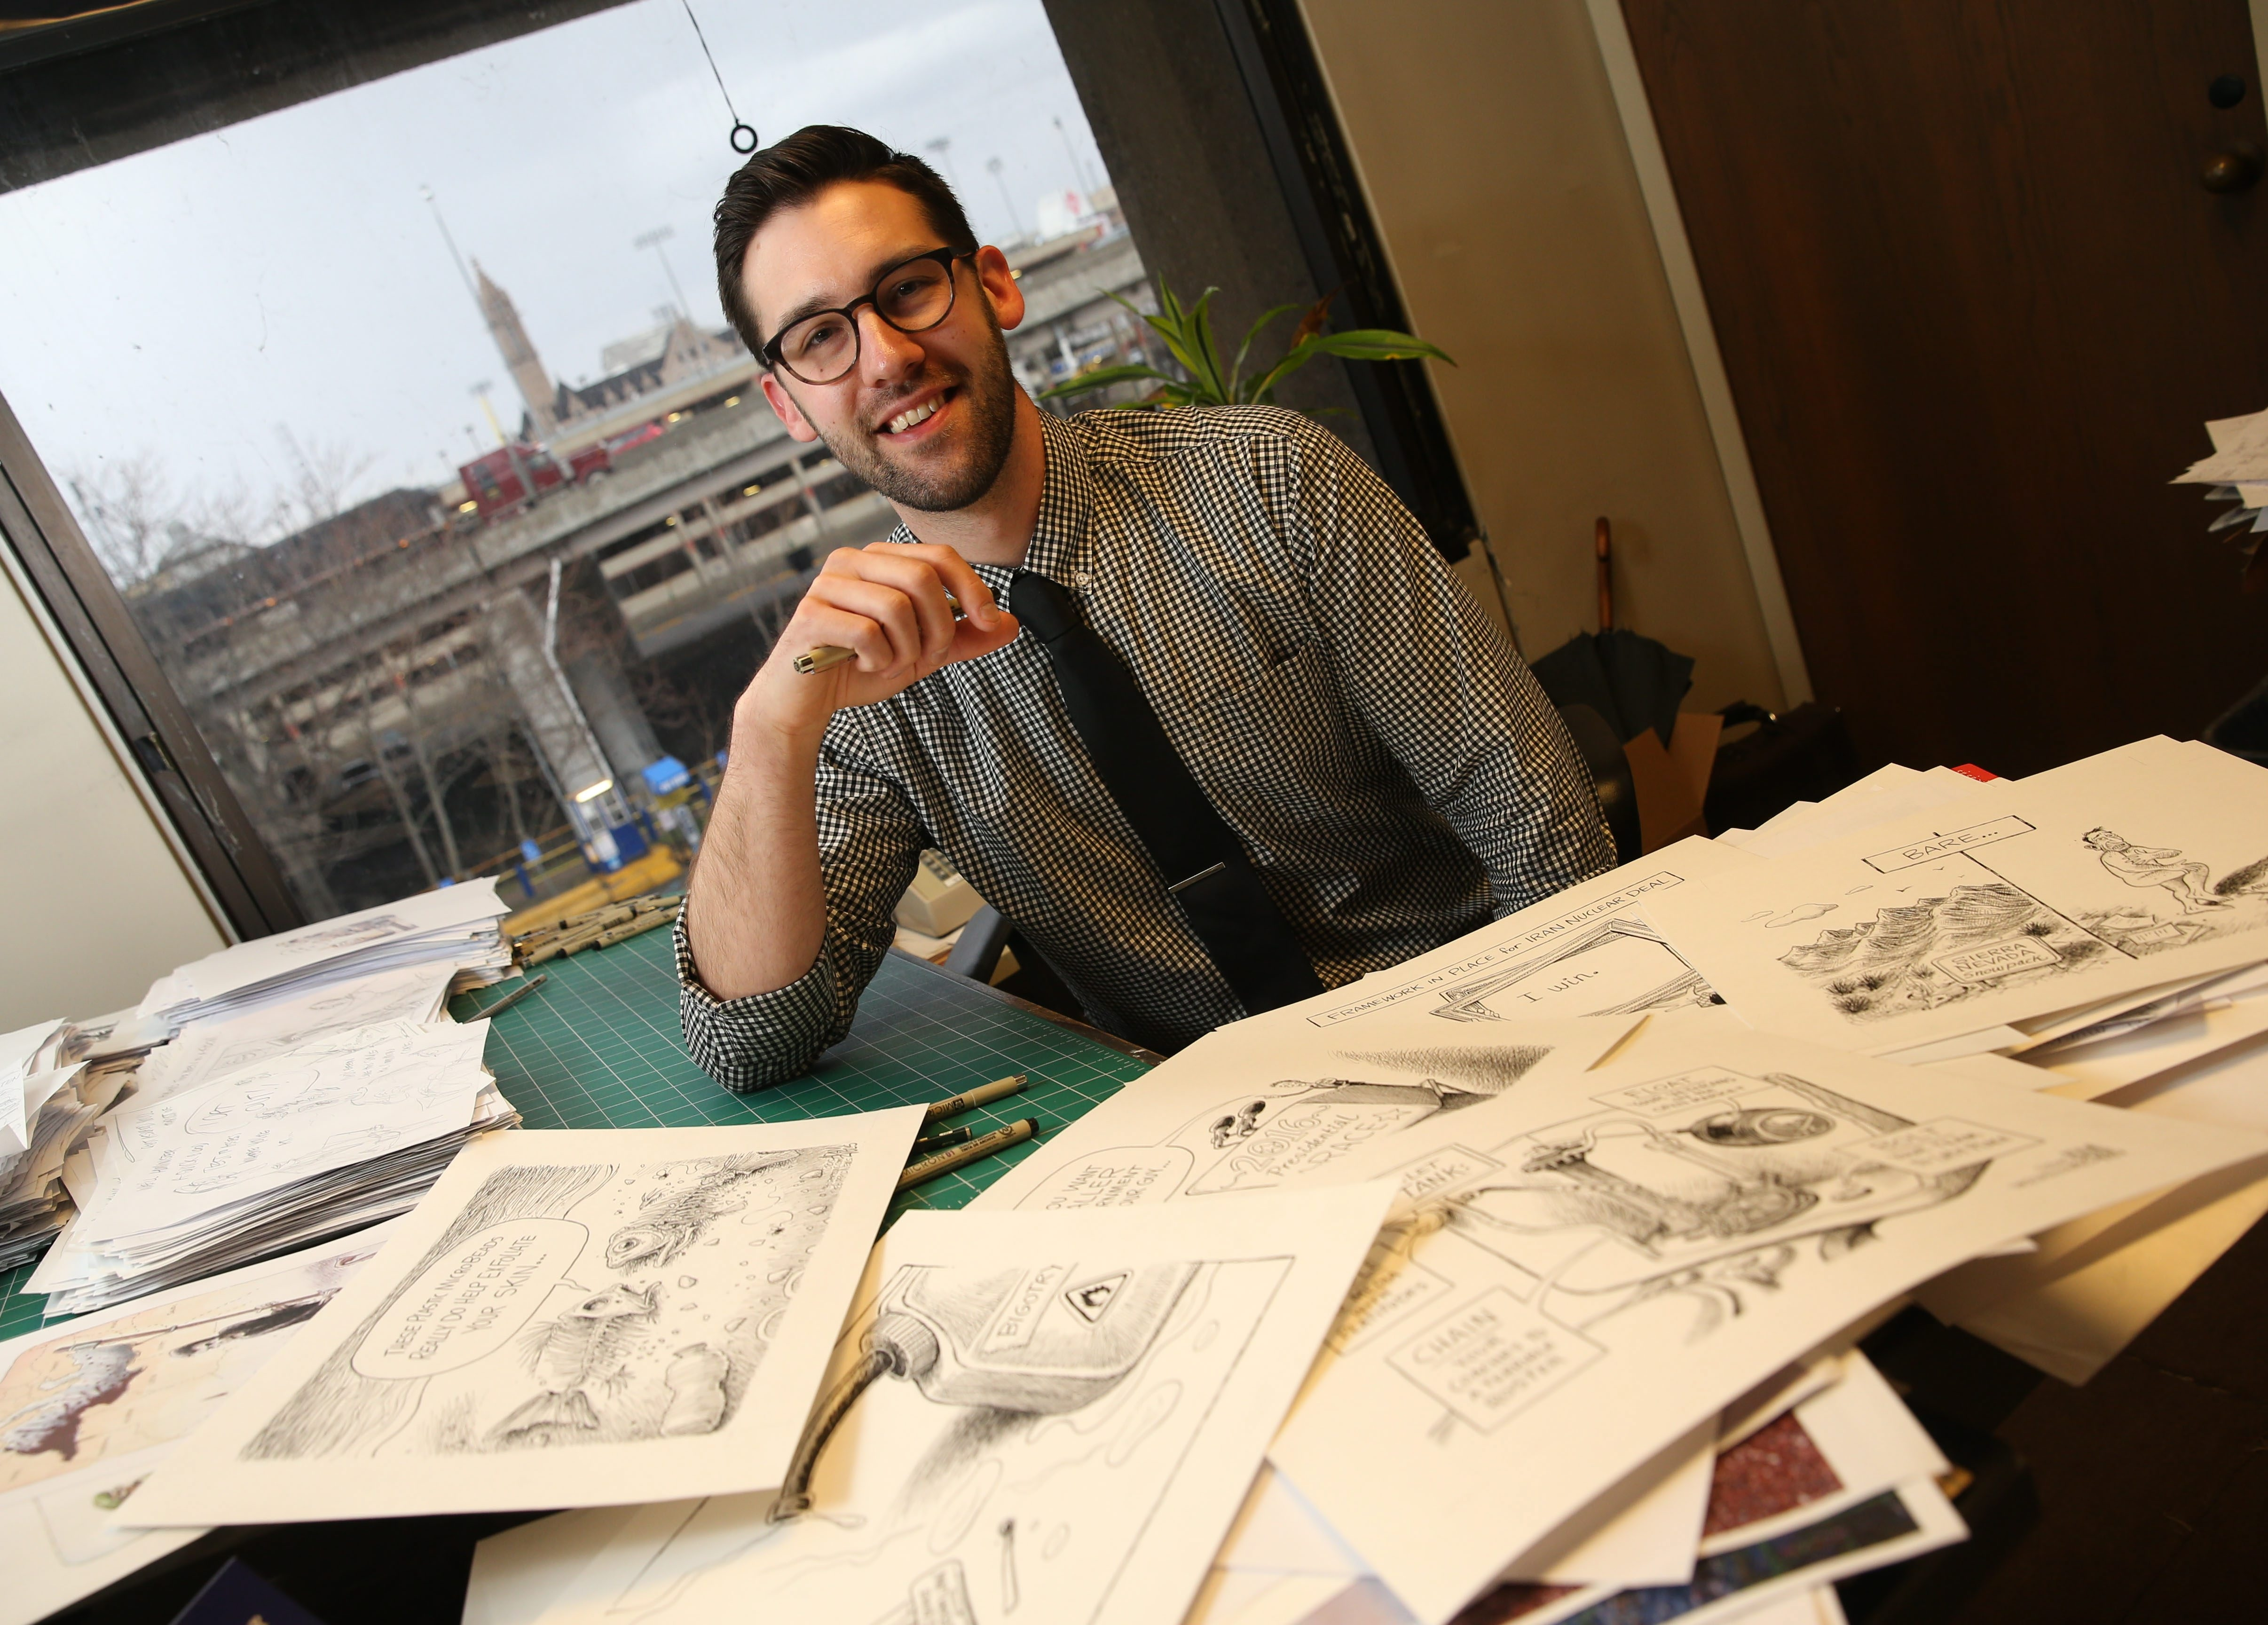 'Without an awesome team and an awesome newsroom, and a city that cares, I couldn't flourish,' said News editorial cartoonist Adam Zyglis, who won the Pulitzer Prize.